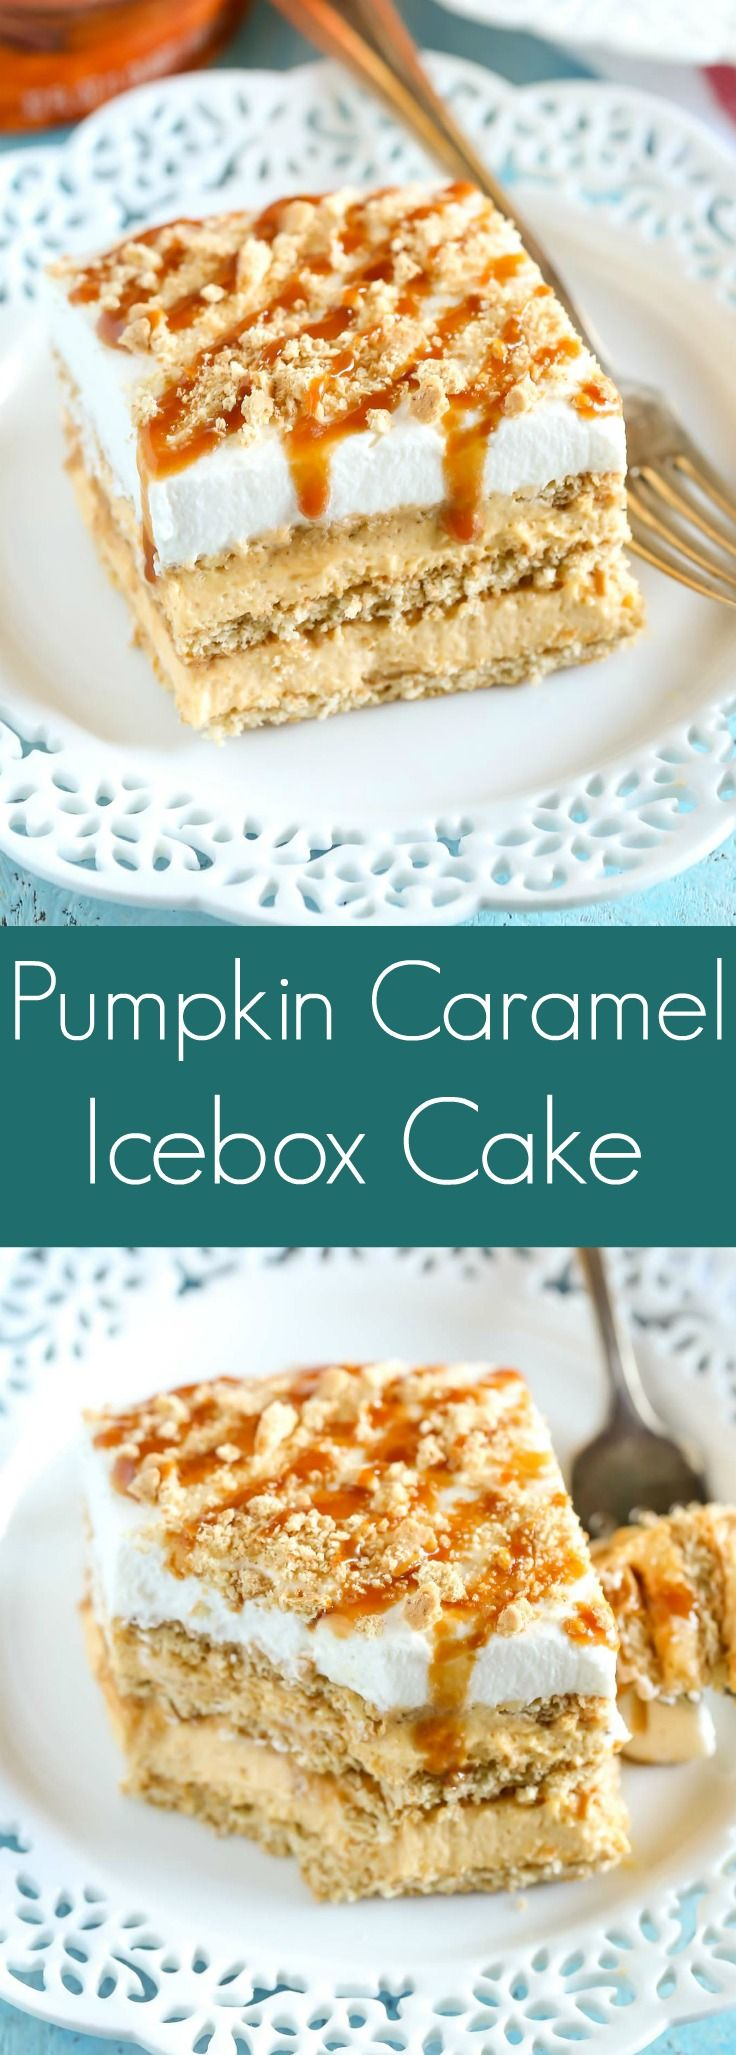 Layers of graham crackers, no-bake pumpkin spice cheesecake filling, and caramel topped off with homemade whipped cream. This No-Bake Pumpkin Caramel Icebox Cake is an easy and delicious fall dessert! @indelight #PumpkinDelight #IDelight #ad